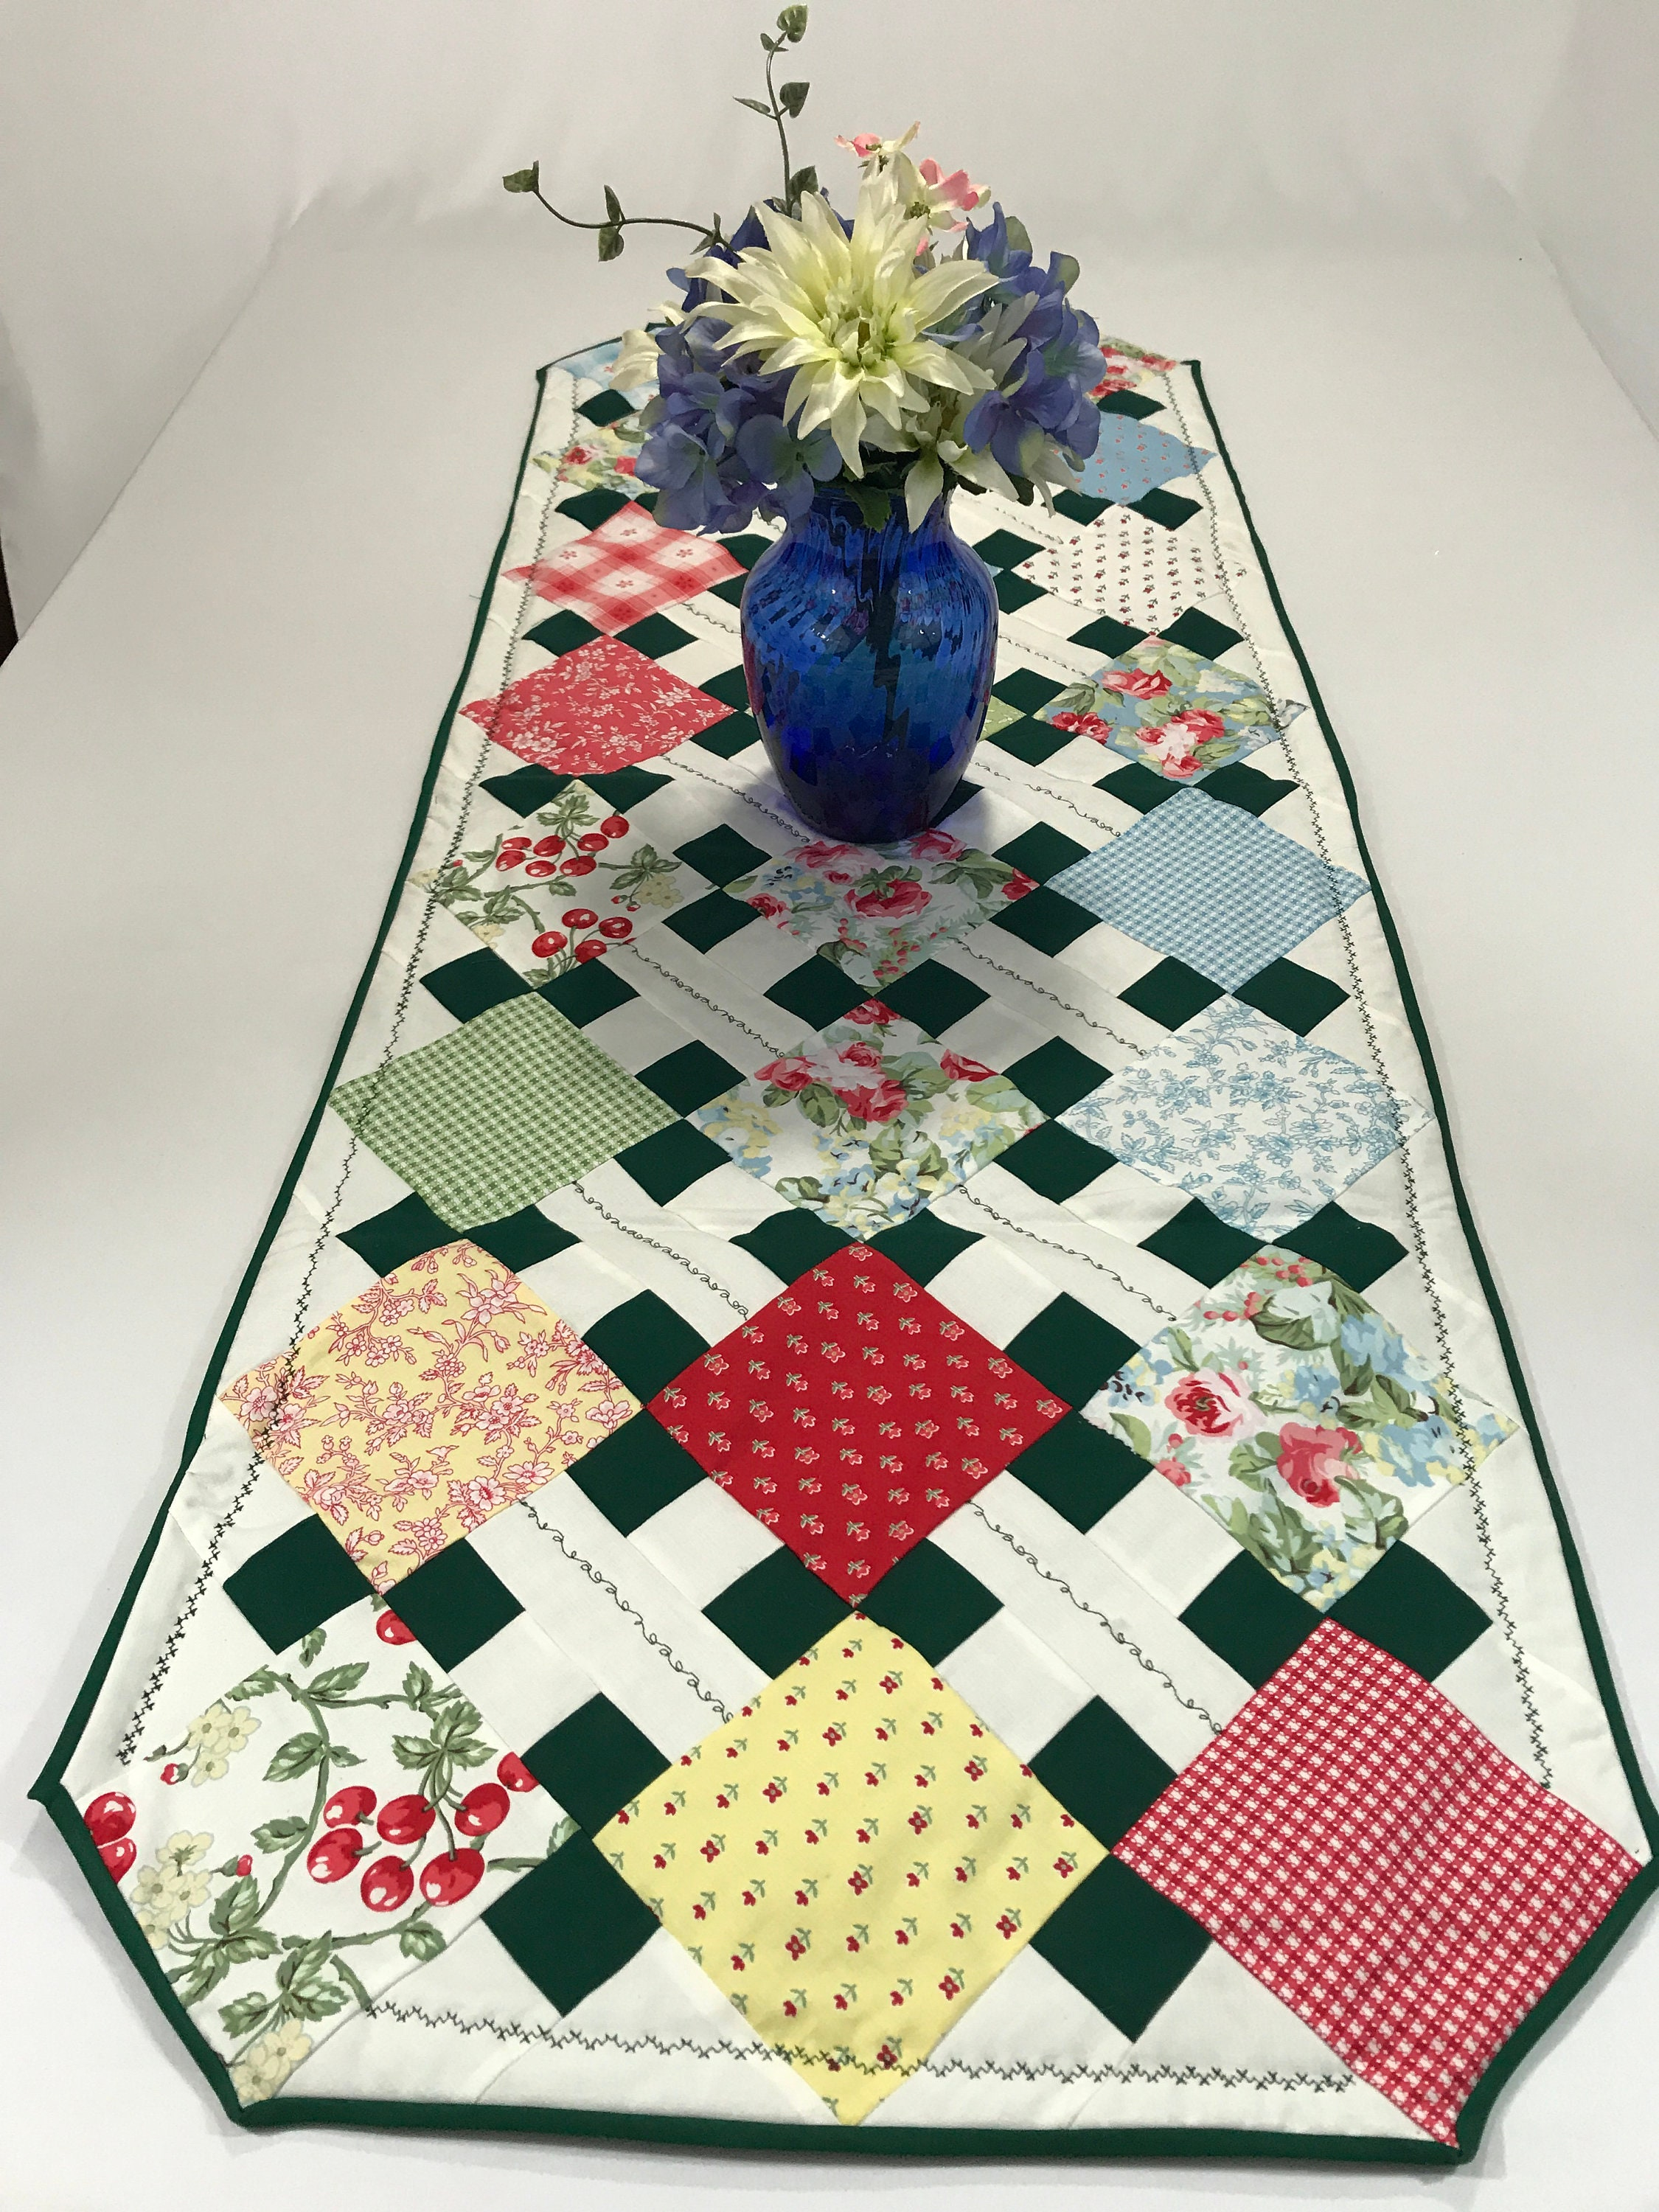 Floral Table Runner Table Runner Floral Patchwork Table Runner